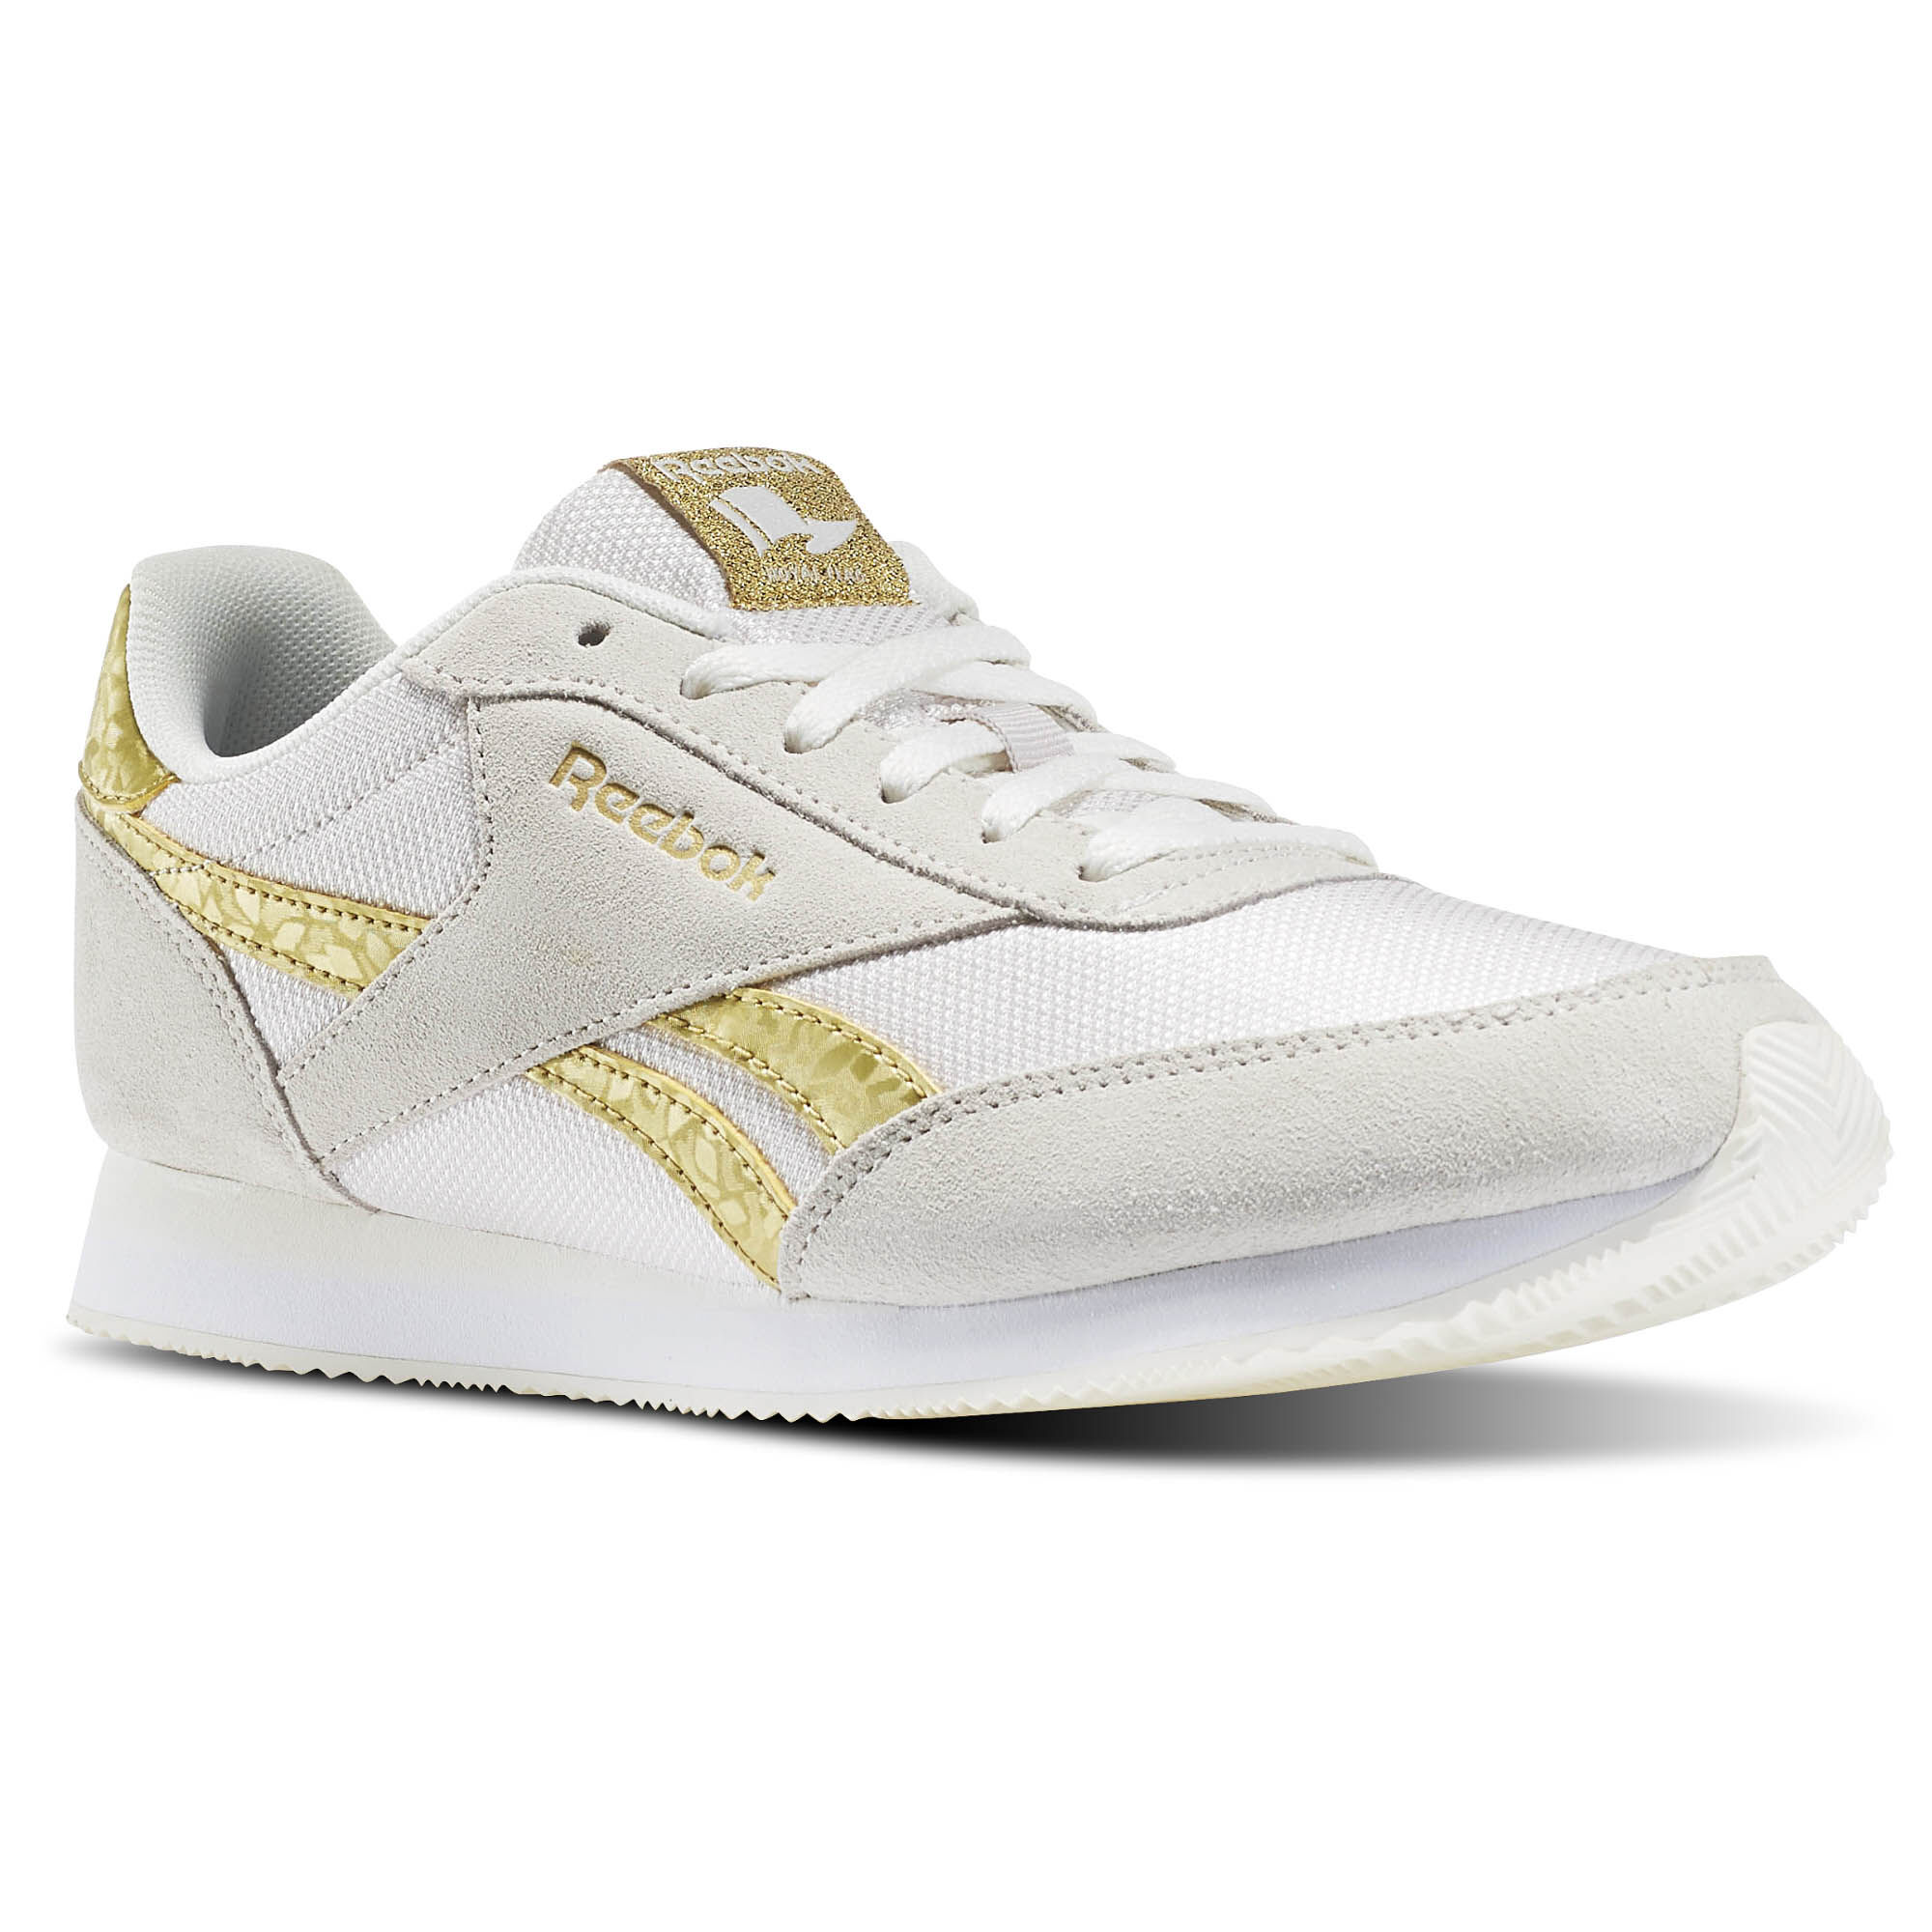 8408d056c7e Buy white and gold reebok classics   OFF51% Discounted